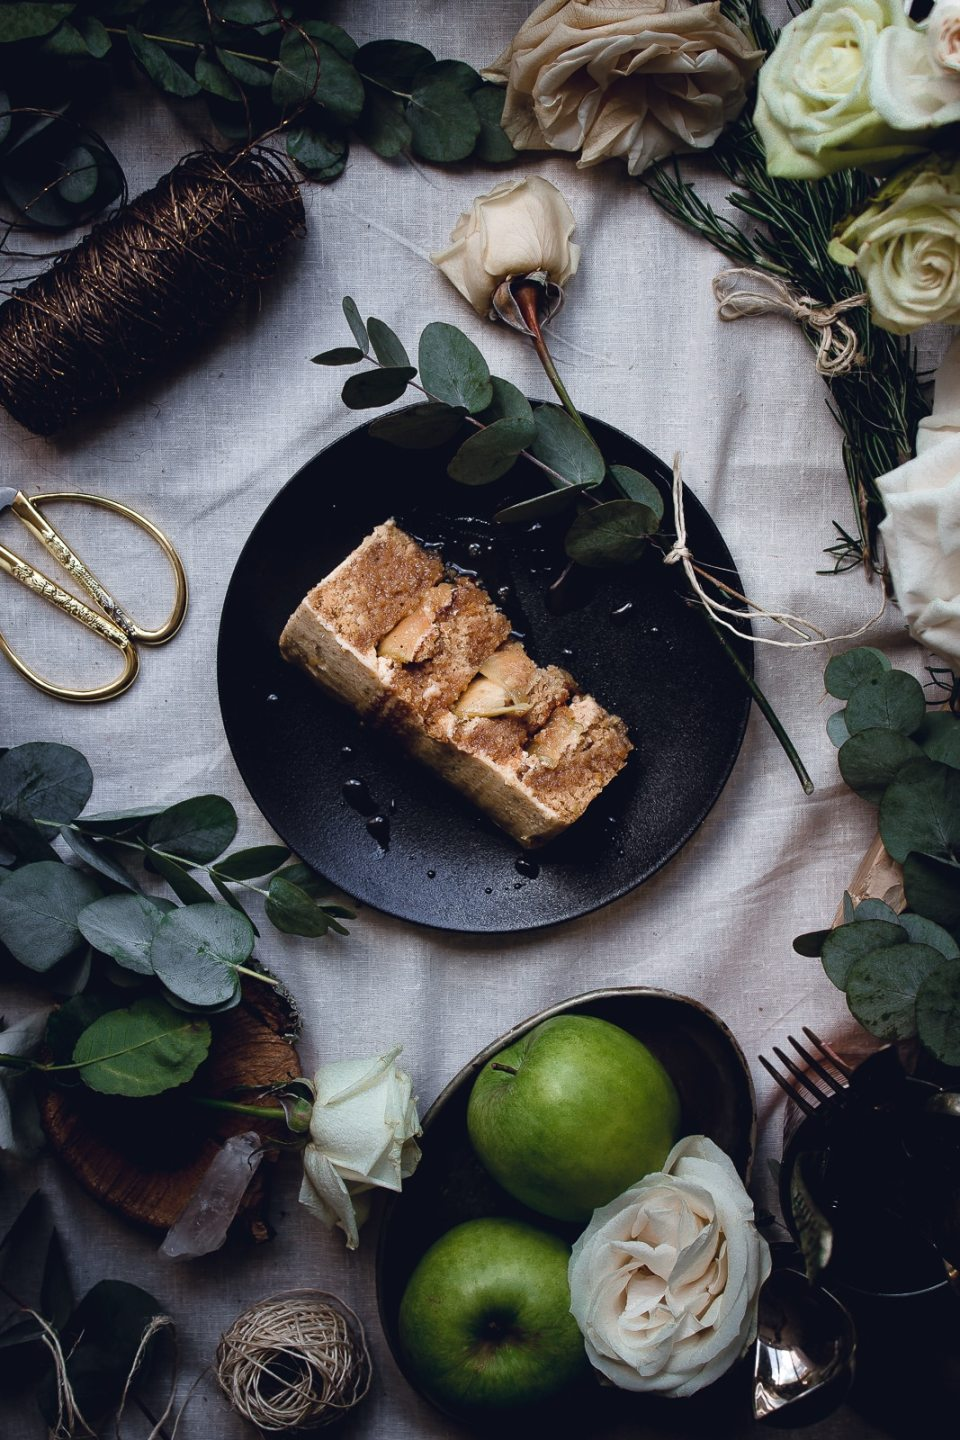 gingerbread-apple-cake-4454